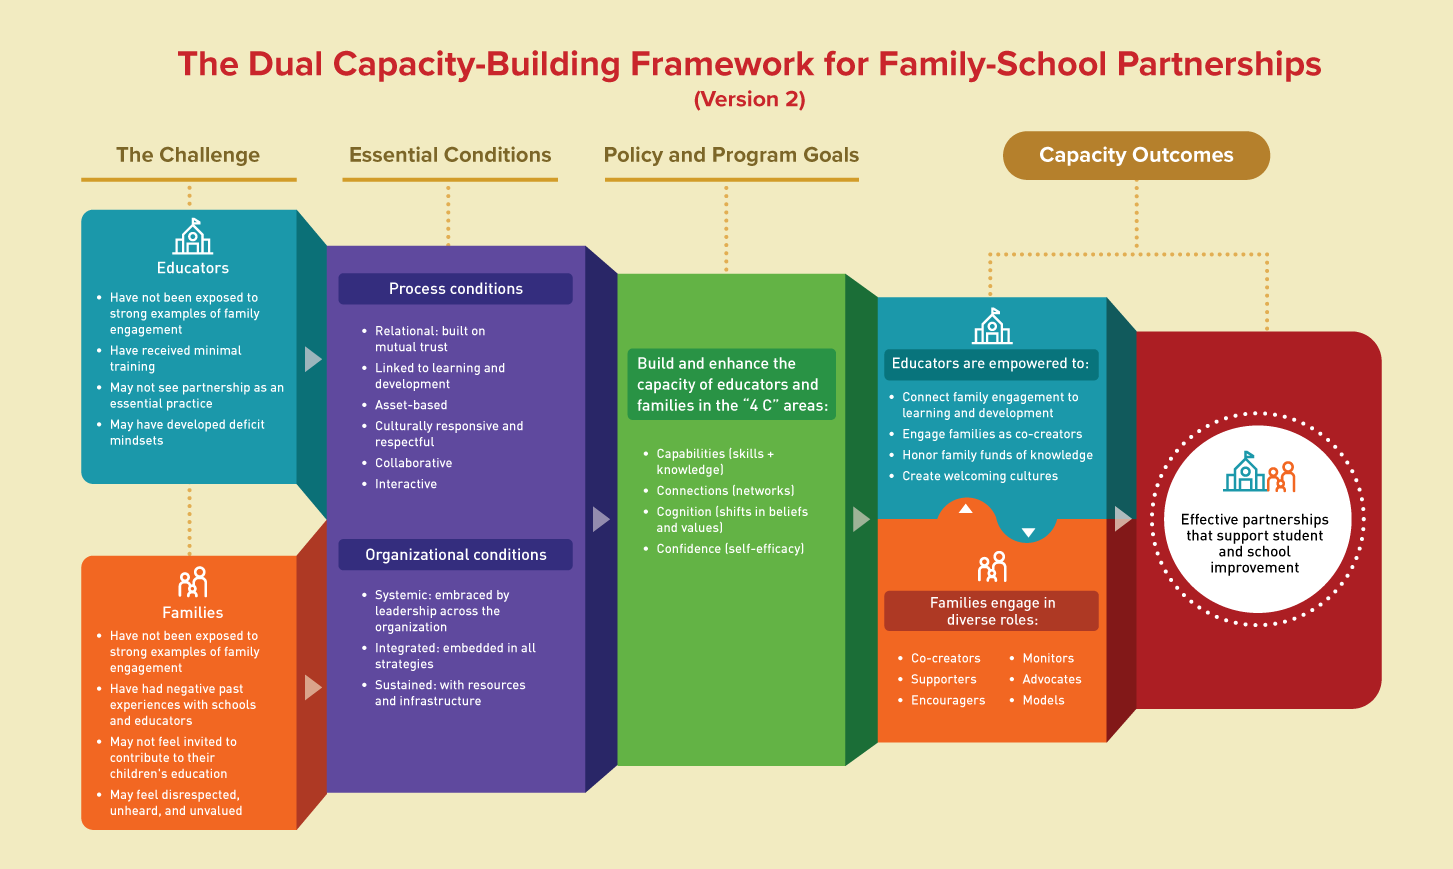 Version 2 of the Dual Capacity-Building Framework for Family-School Partnerships. There are five interactive boxes with information about the challenge, essential conditions, policy and program goals and capacity outcomes.